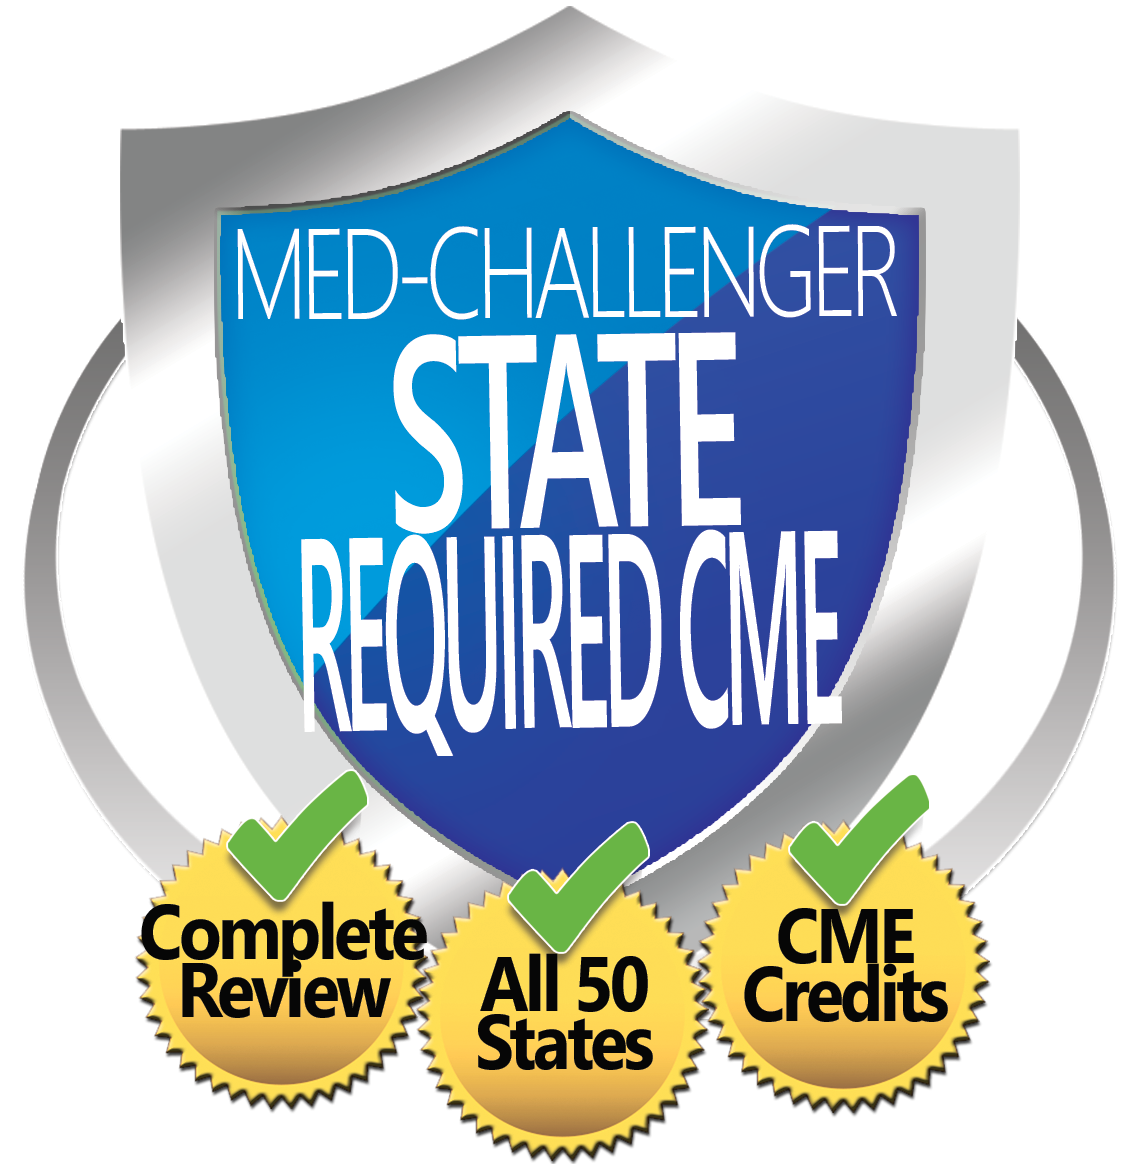 State Required CME, Med-Challenger State Required CME, Complete Review, All 50 States, CME Credits